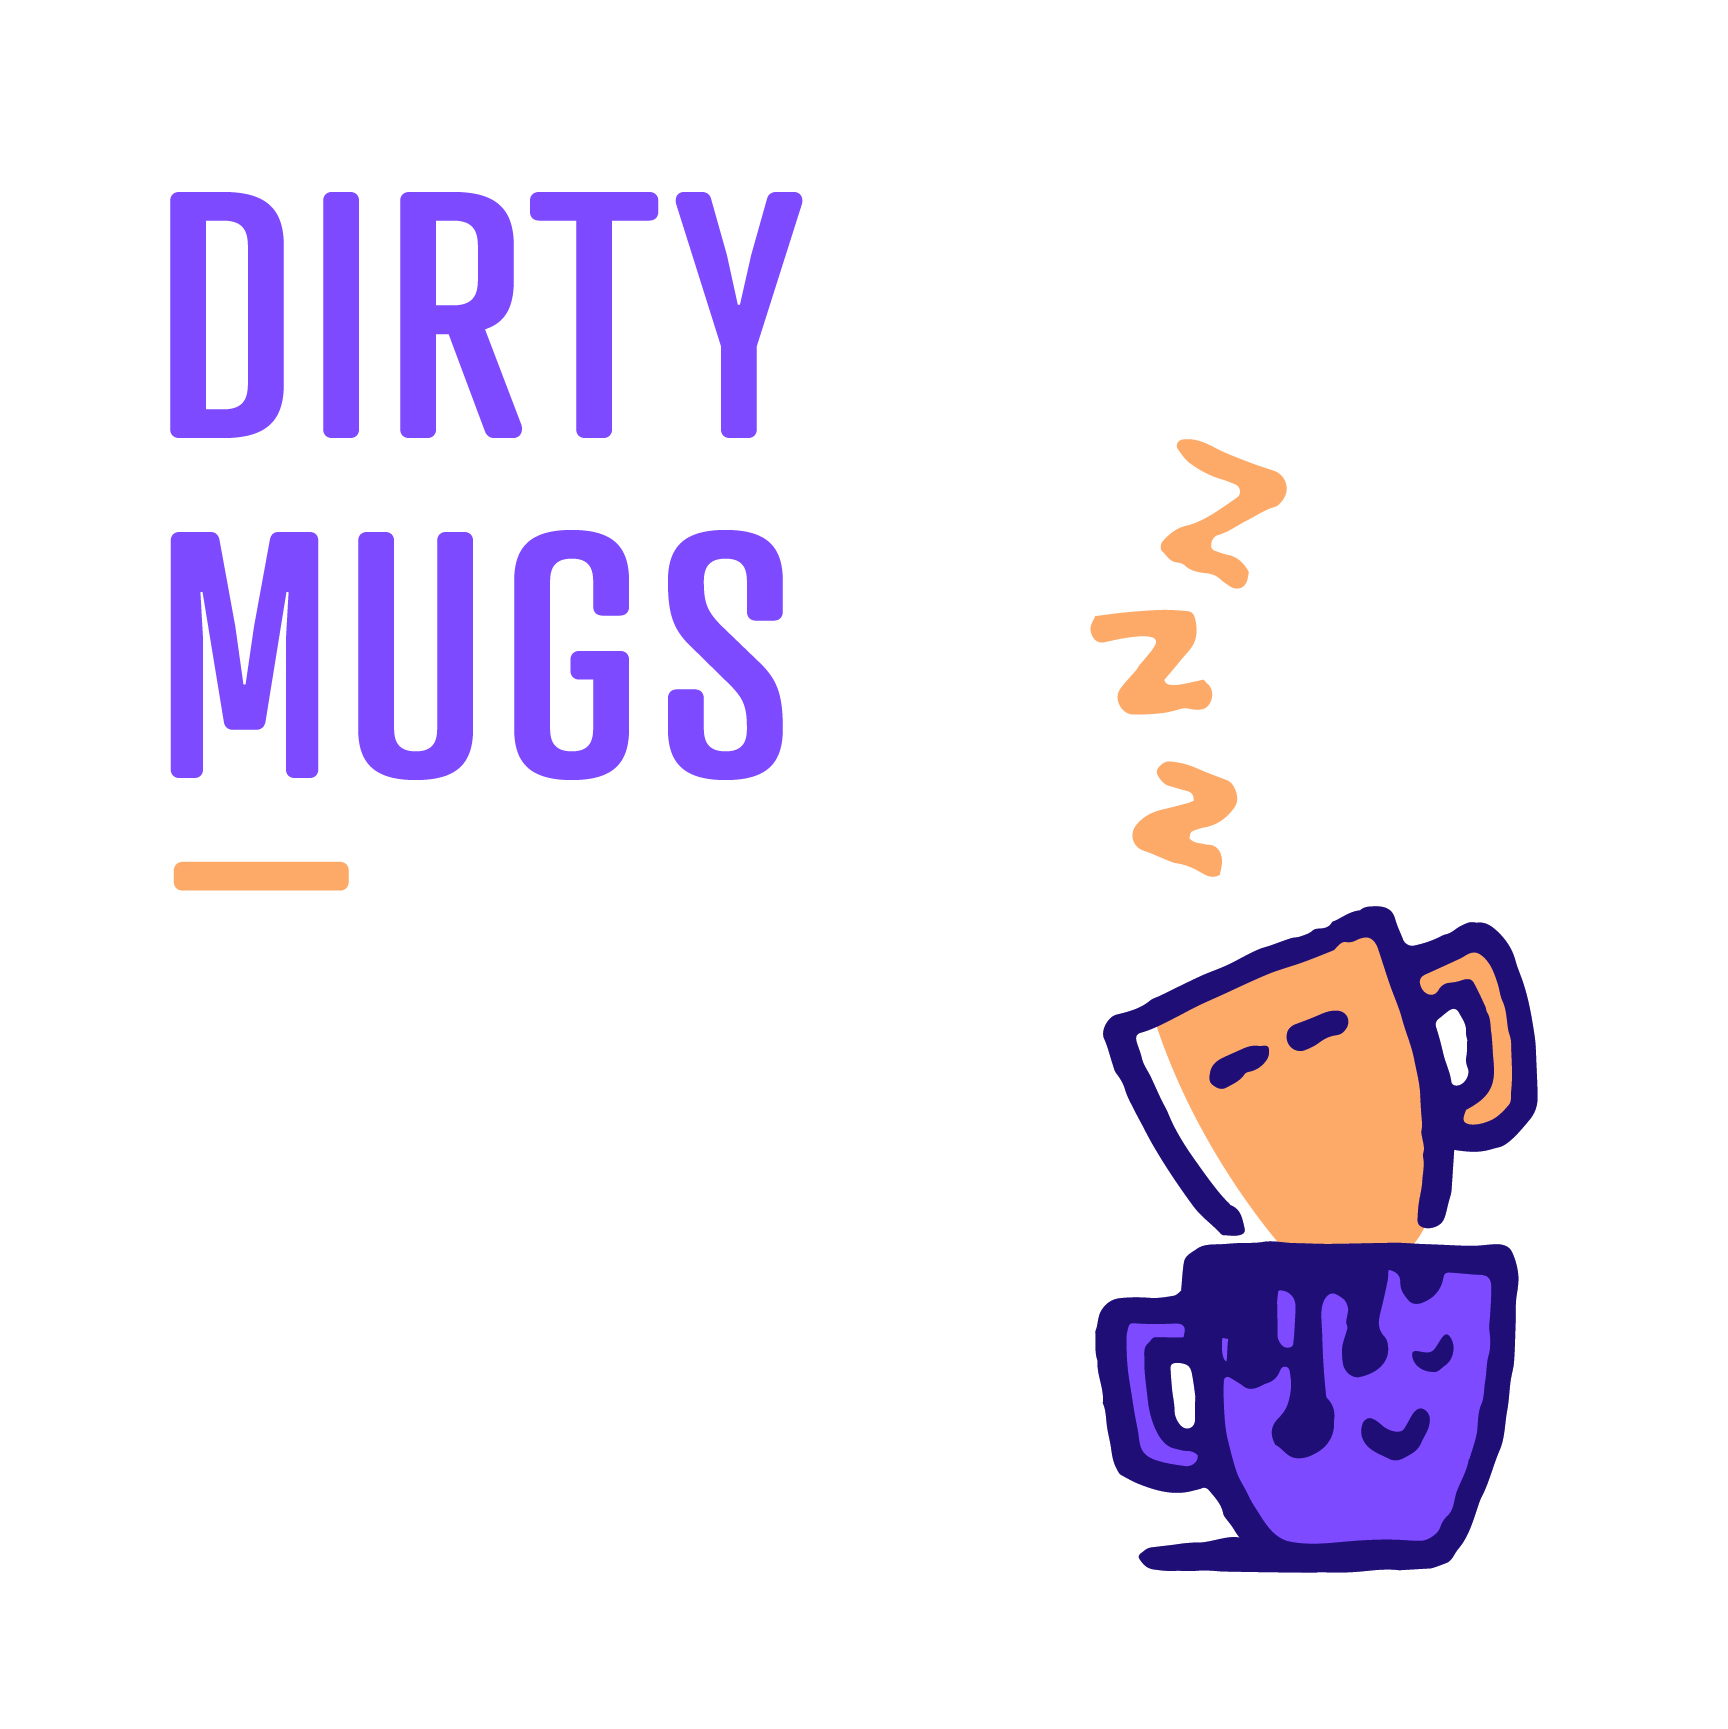 dirty mugs signage